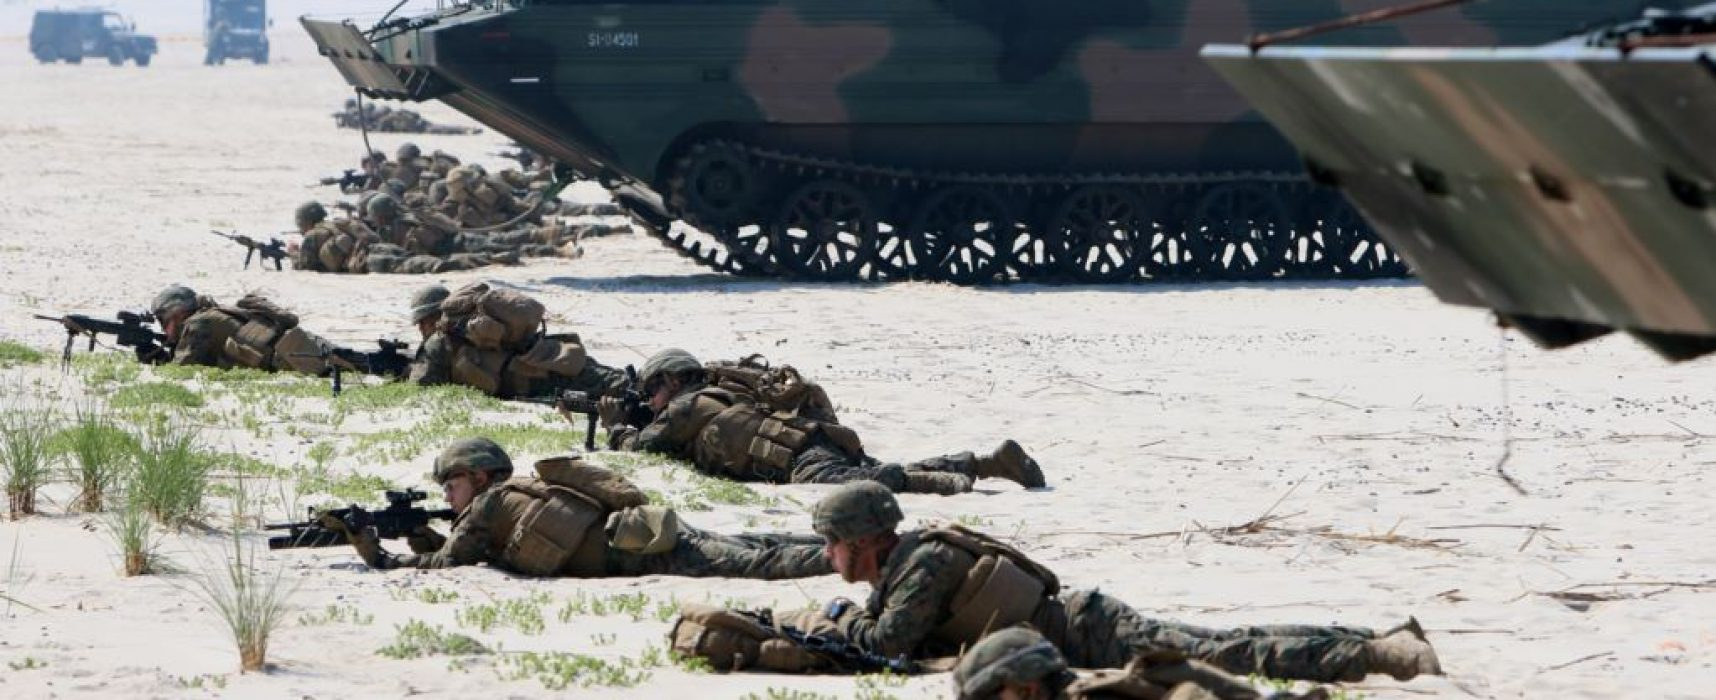 The claim on Russian state TV that NATO doubles defense spending is baseless